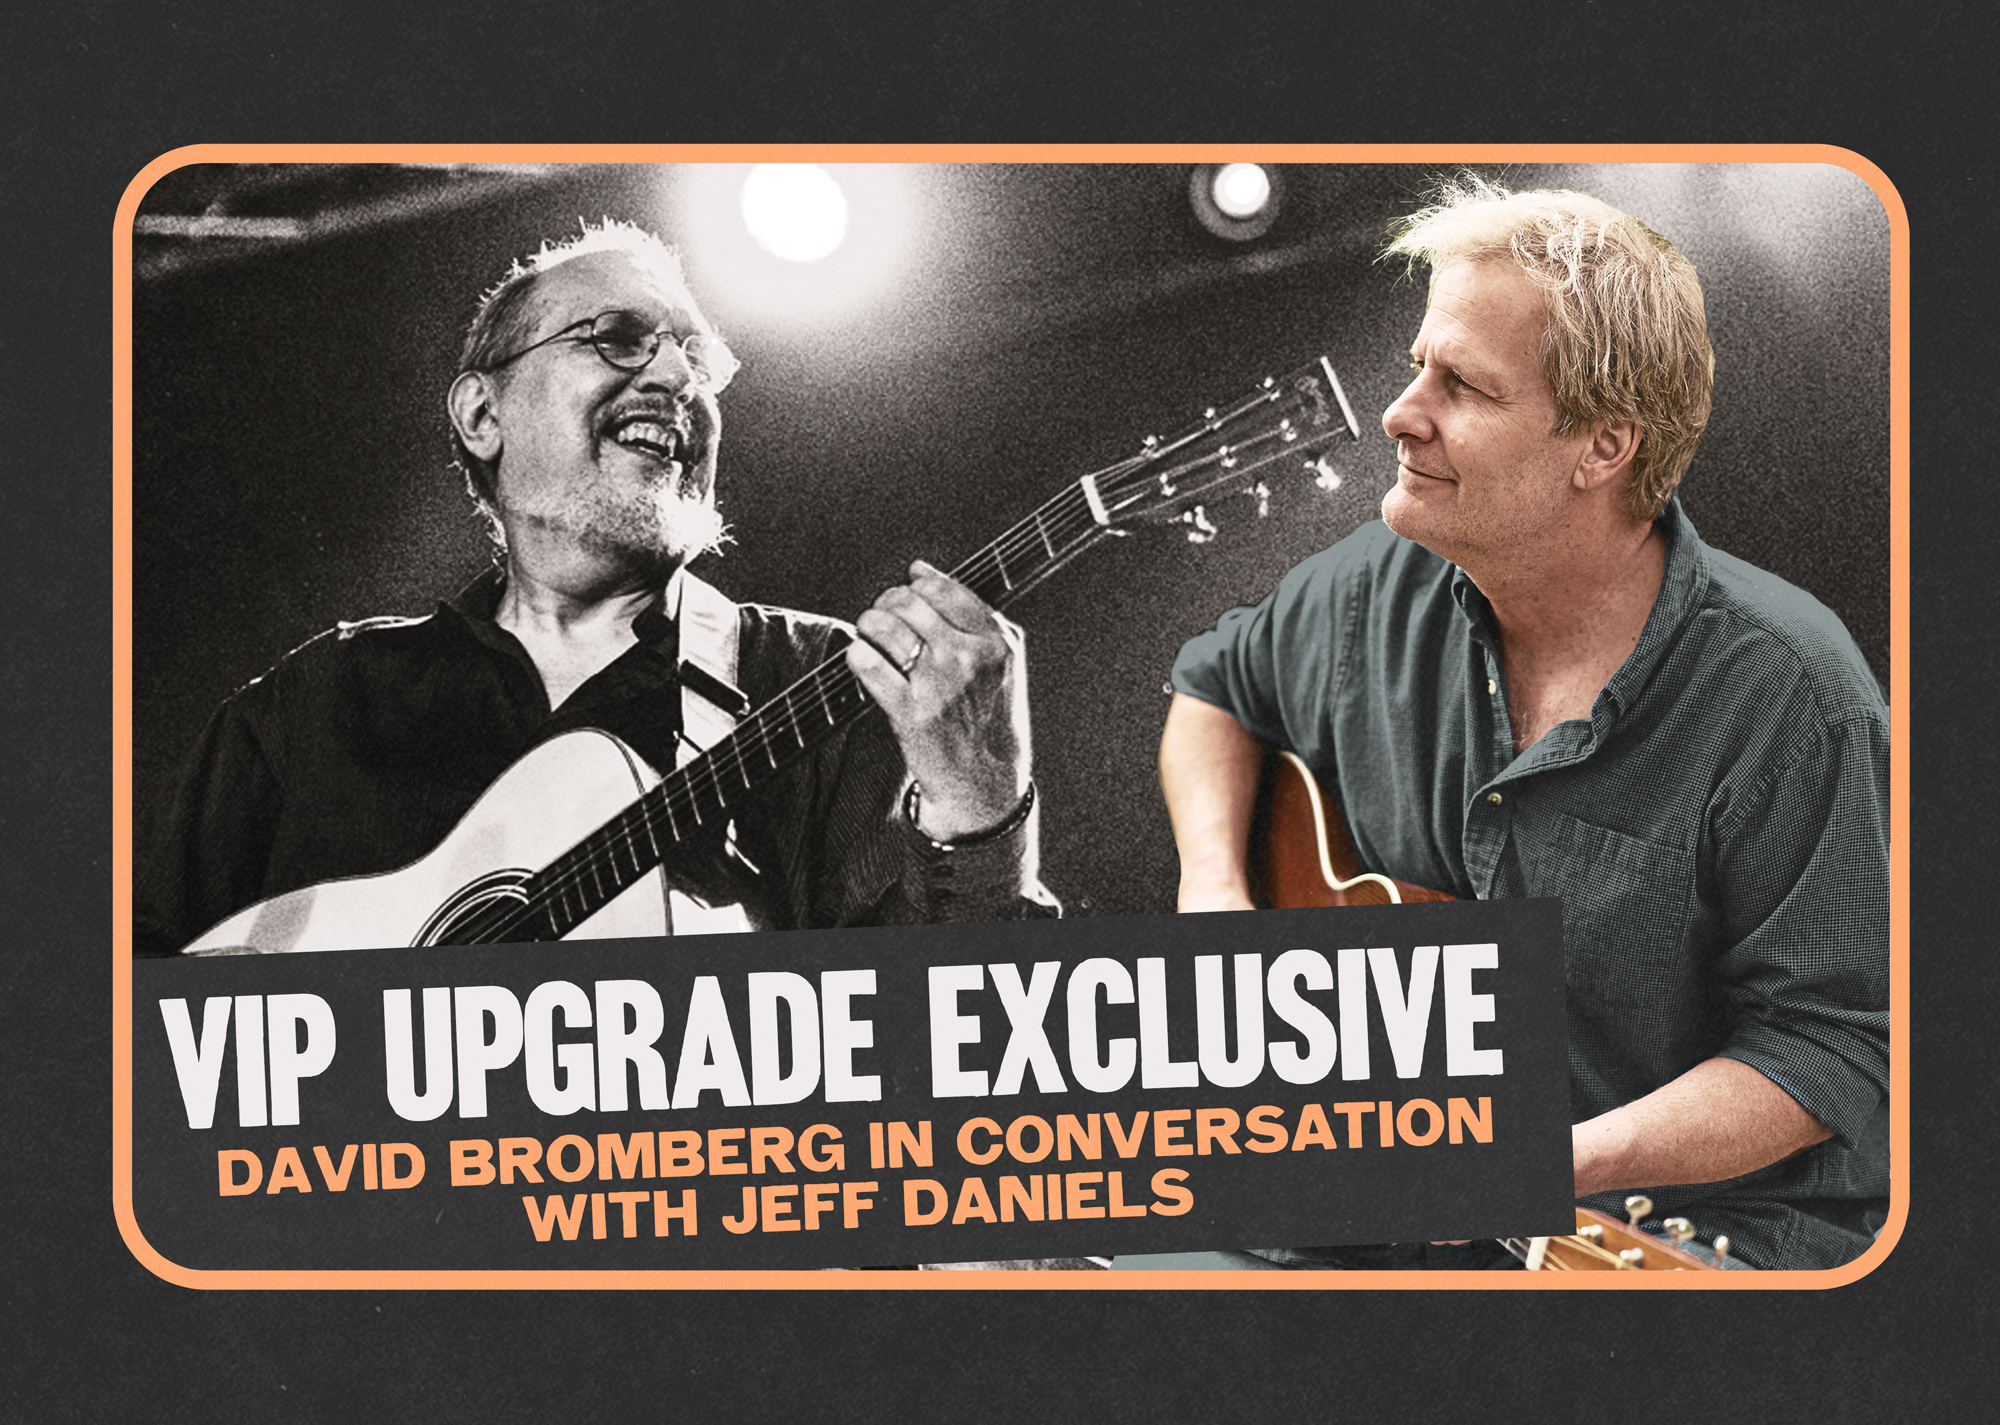 David Bromberg in conversation with Jeff Daniels